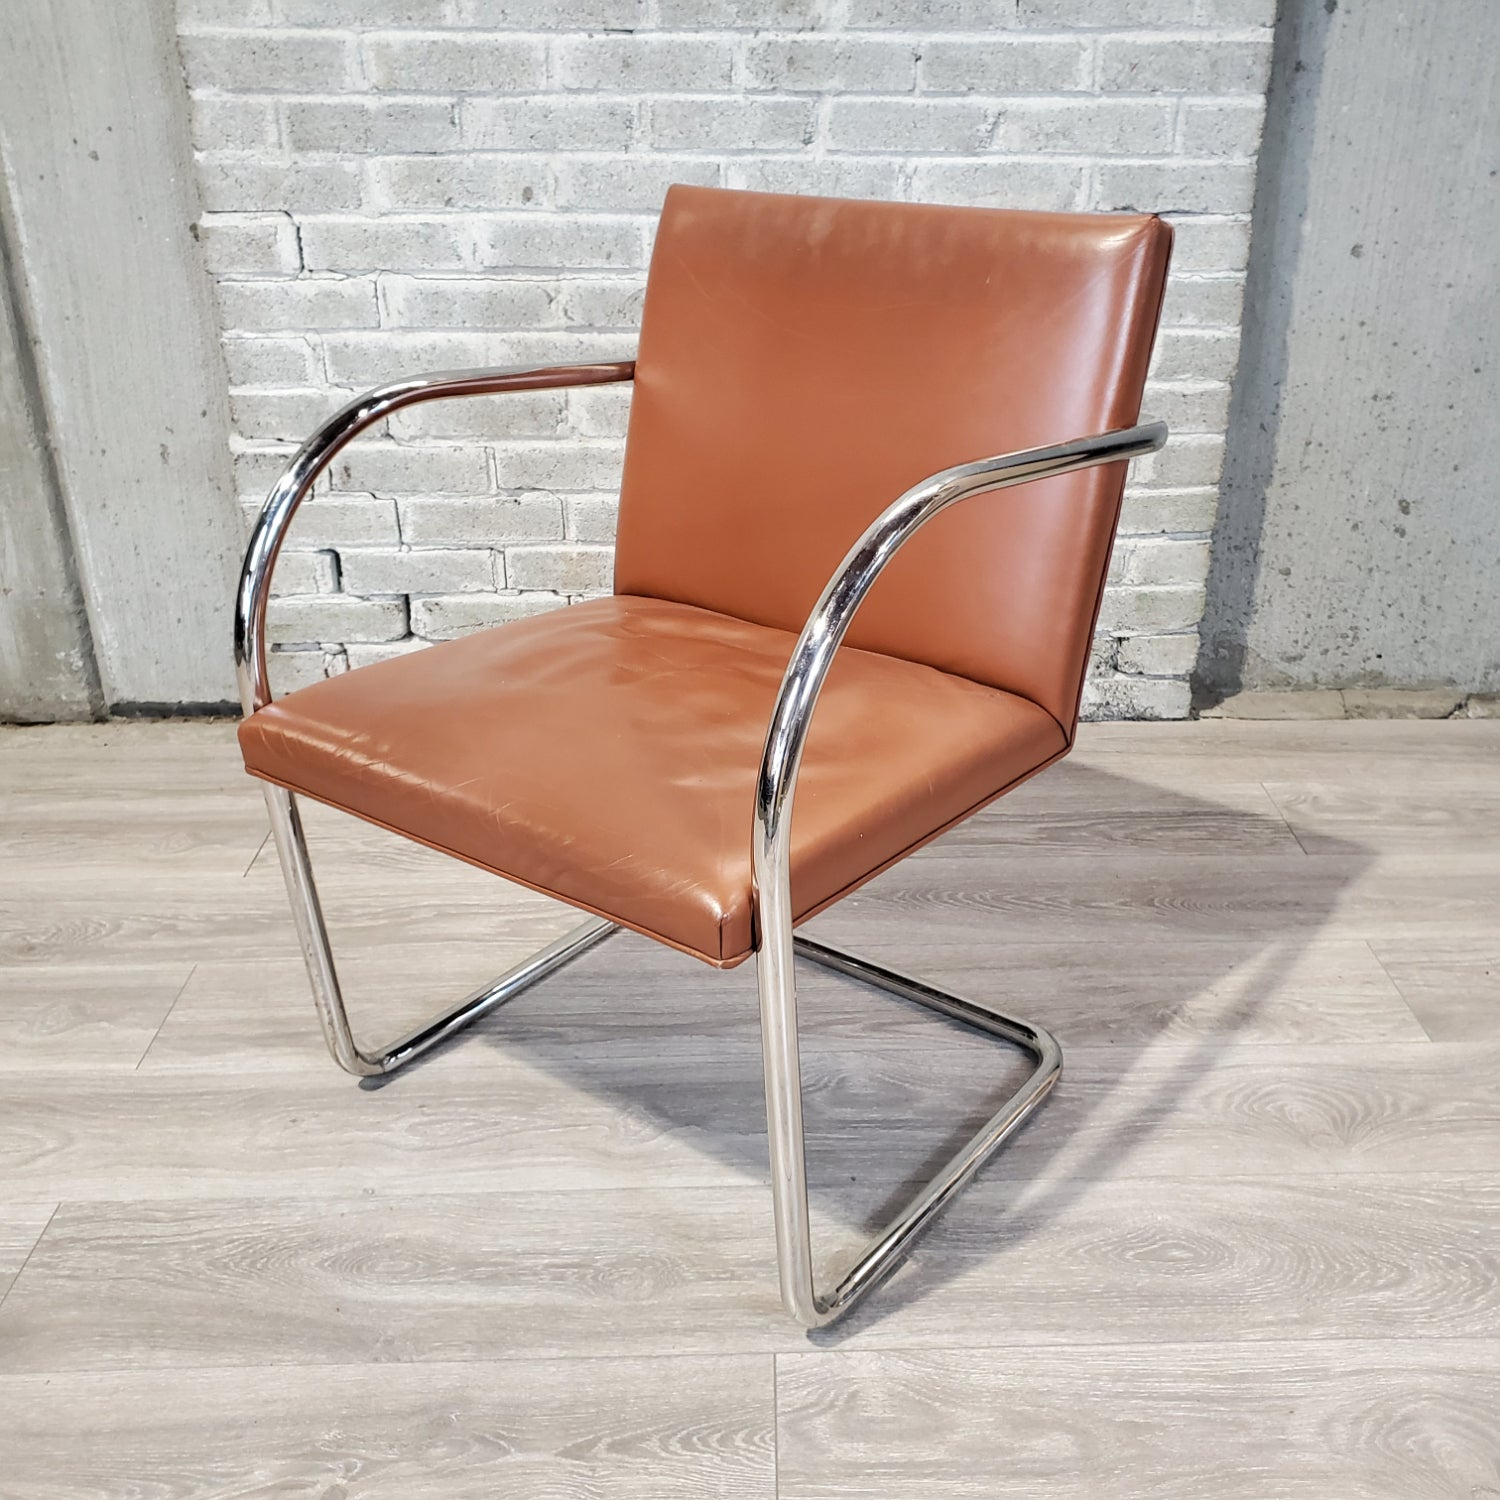 Pre-Owned - Brueton Tubular Chair Vintage Brown Leather - Duckys Office Furniture